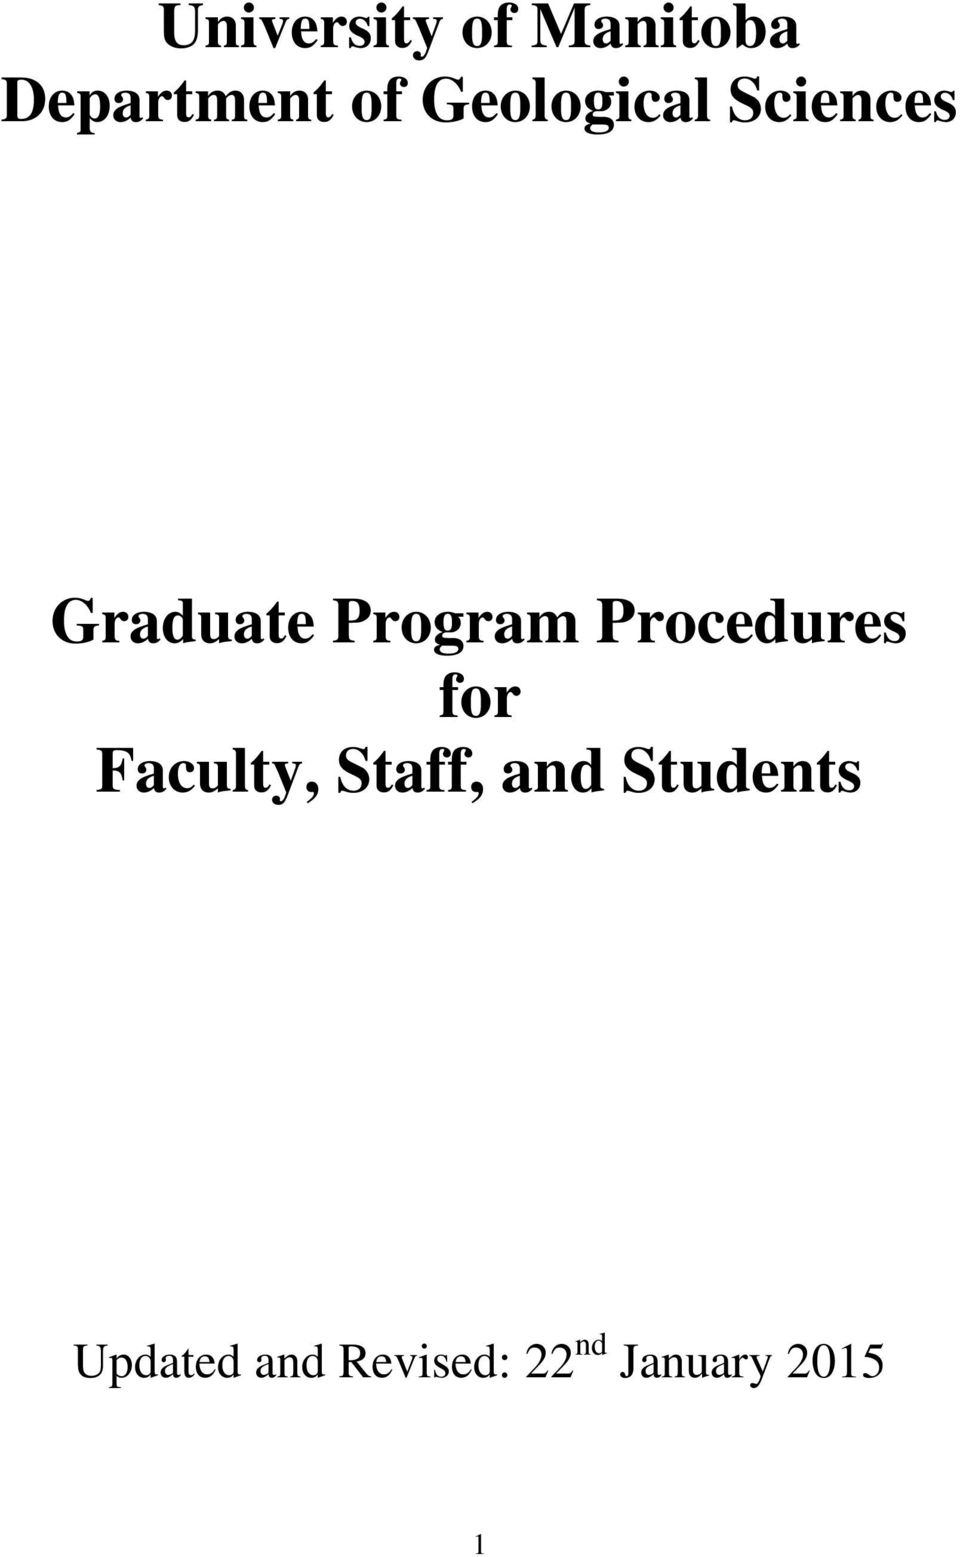 Procedures for Faculty, Staff, and